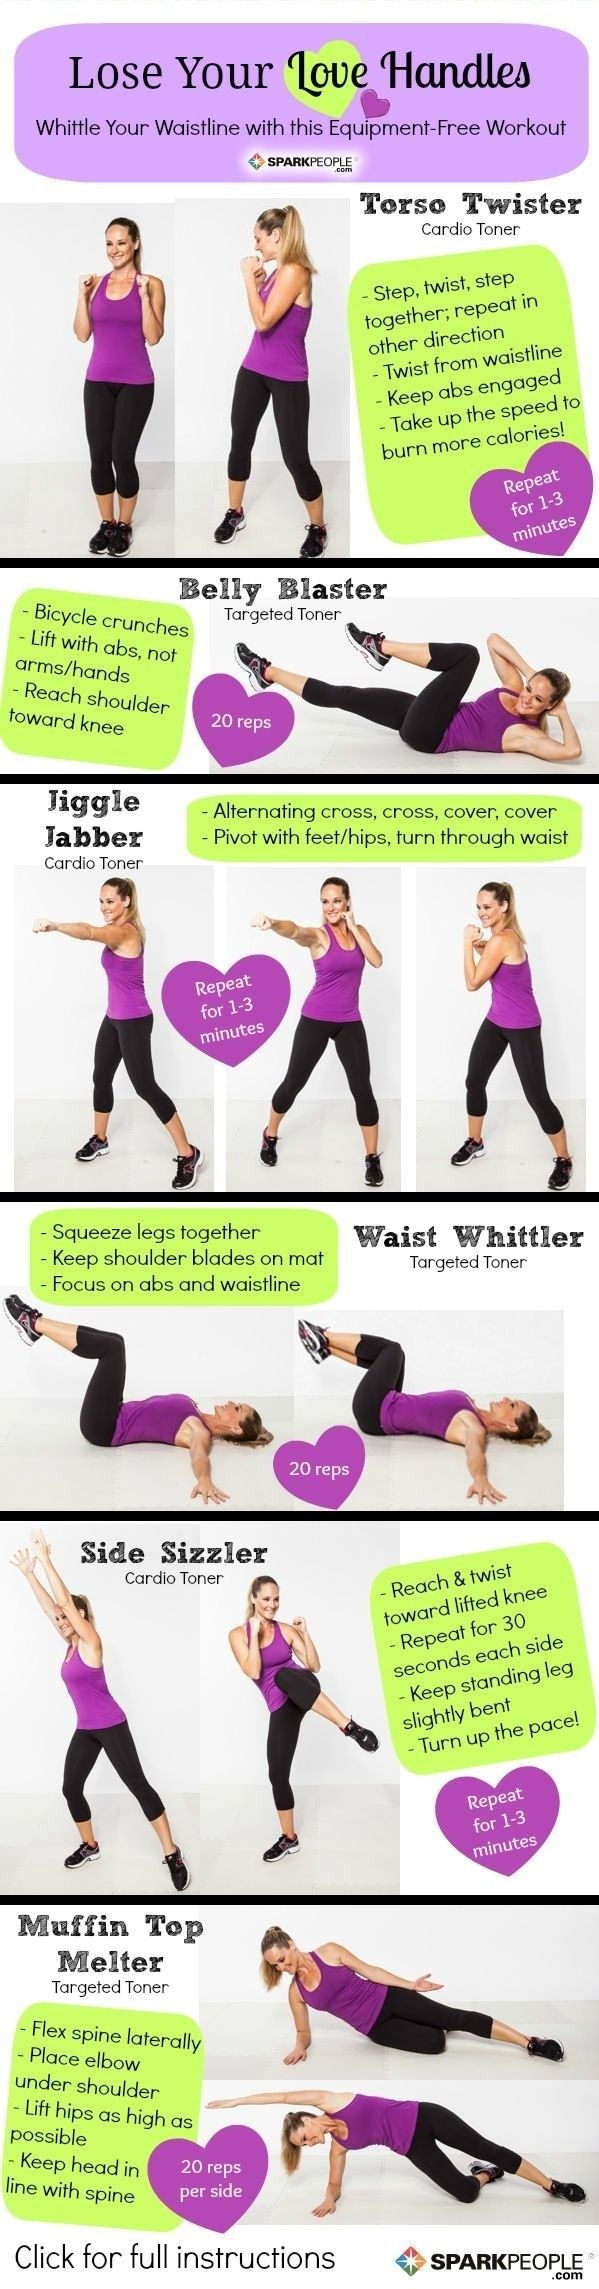 Lose Your Love Handles! 6 Moves To Melt Your Muffin Top!